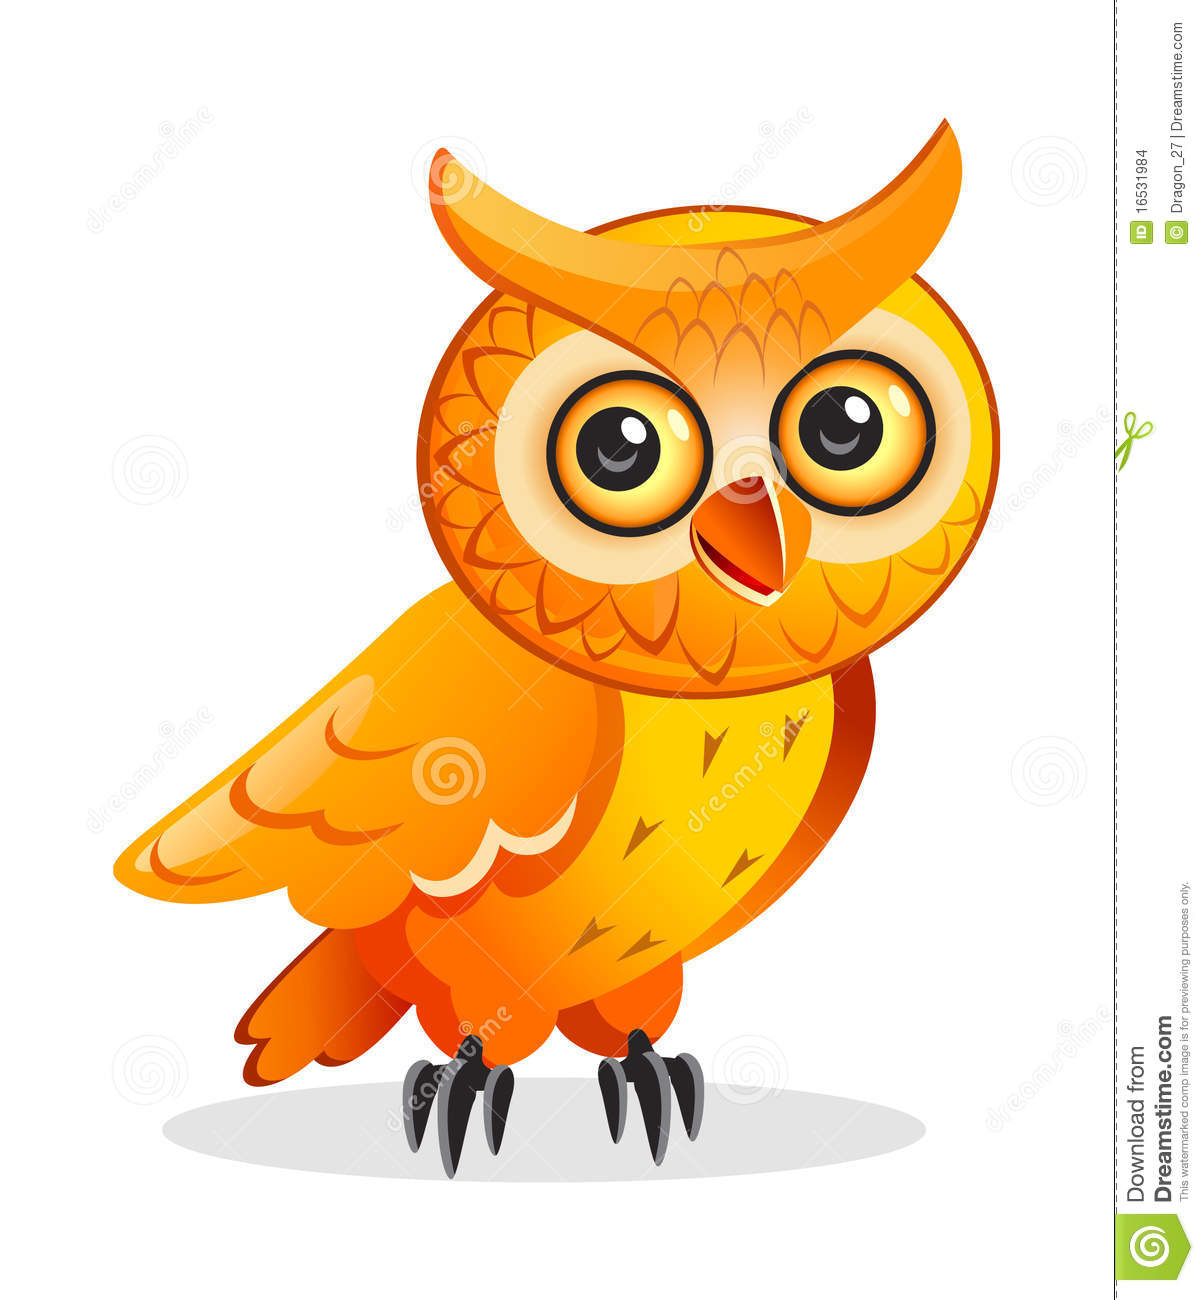 Hibou de dessin anim illustration de vecteur - Dessins hibou ...